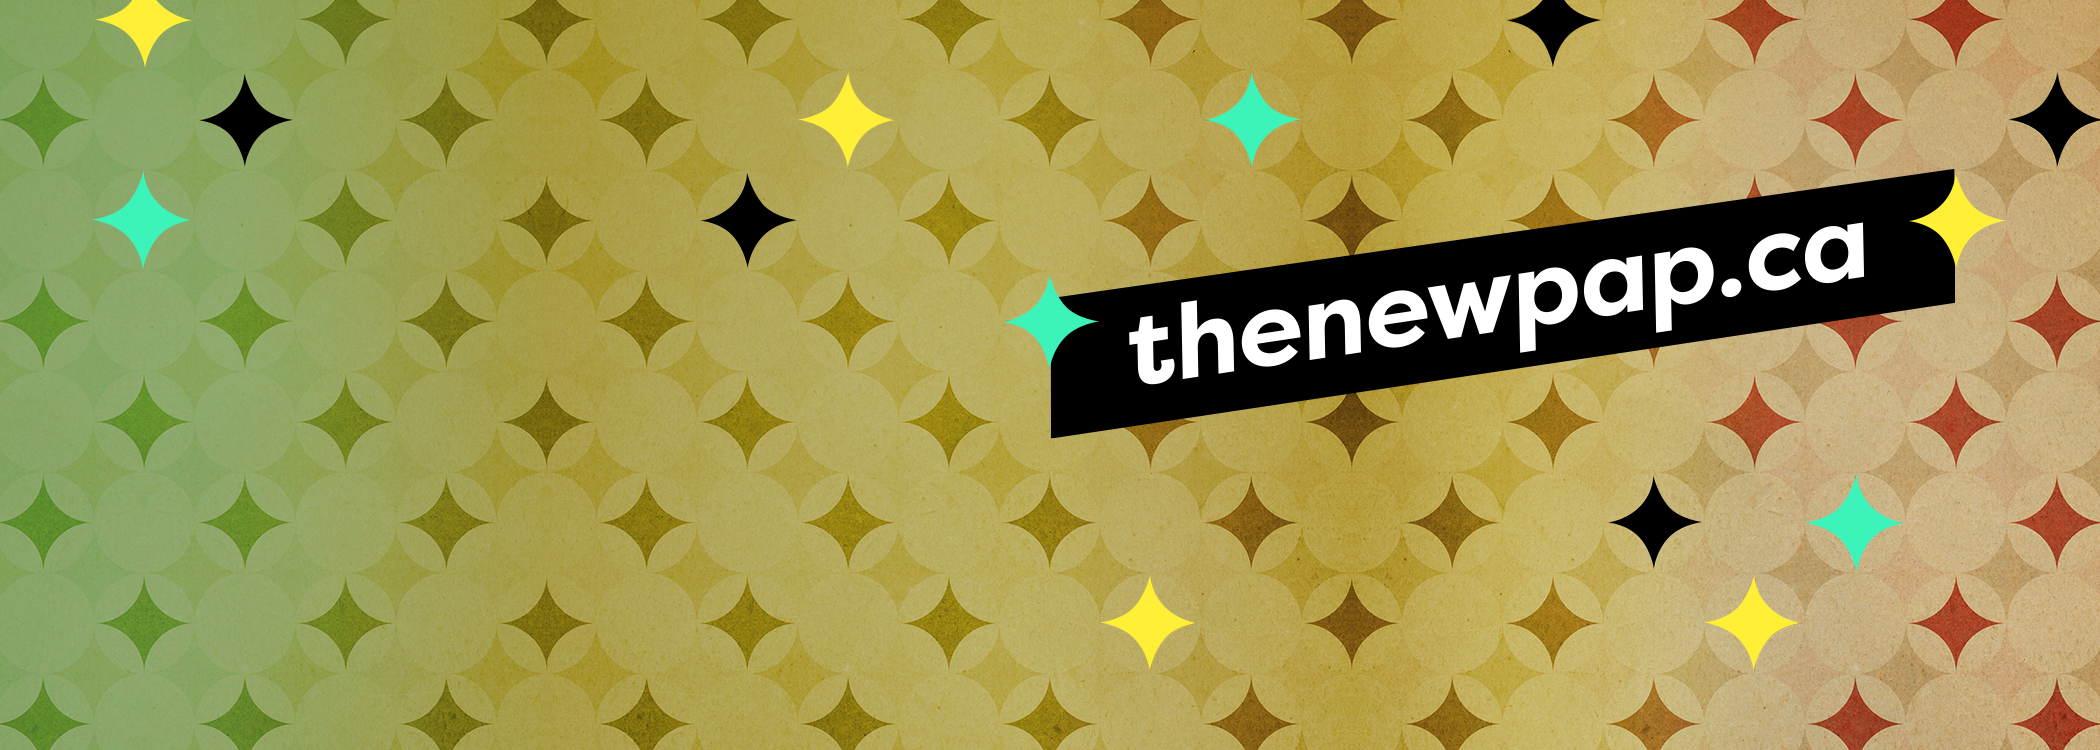 background with stars and name of website thenewpap.ca